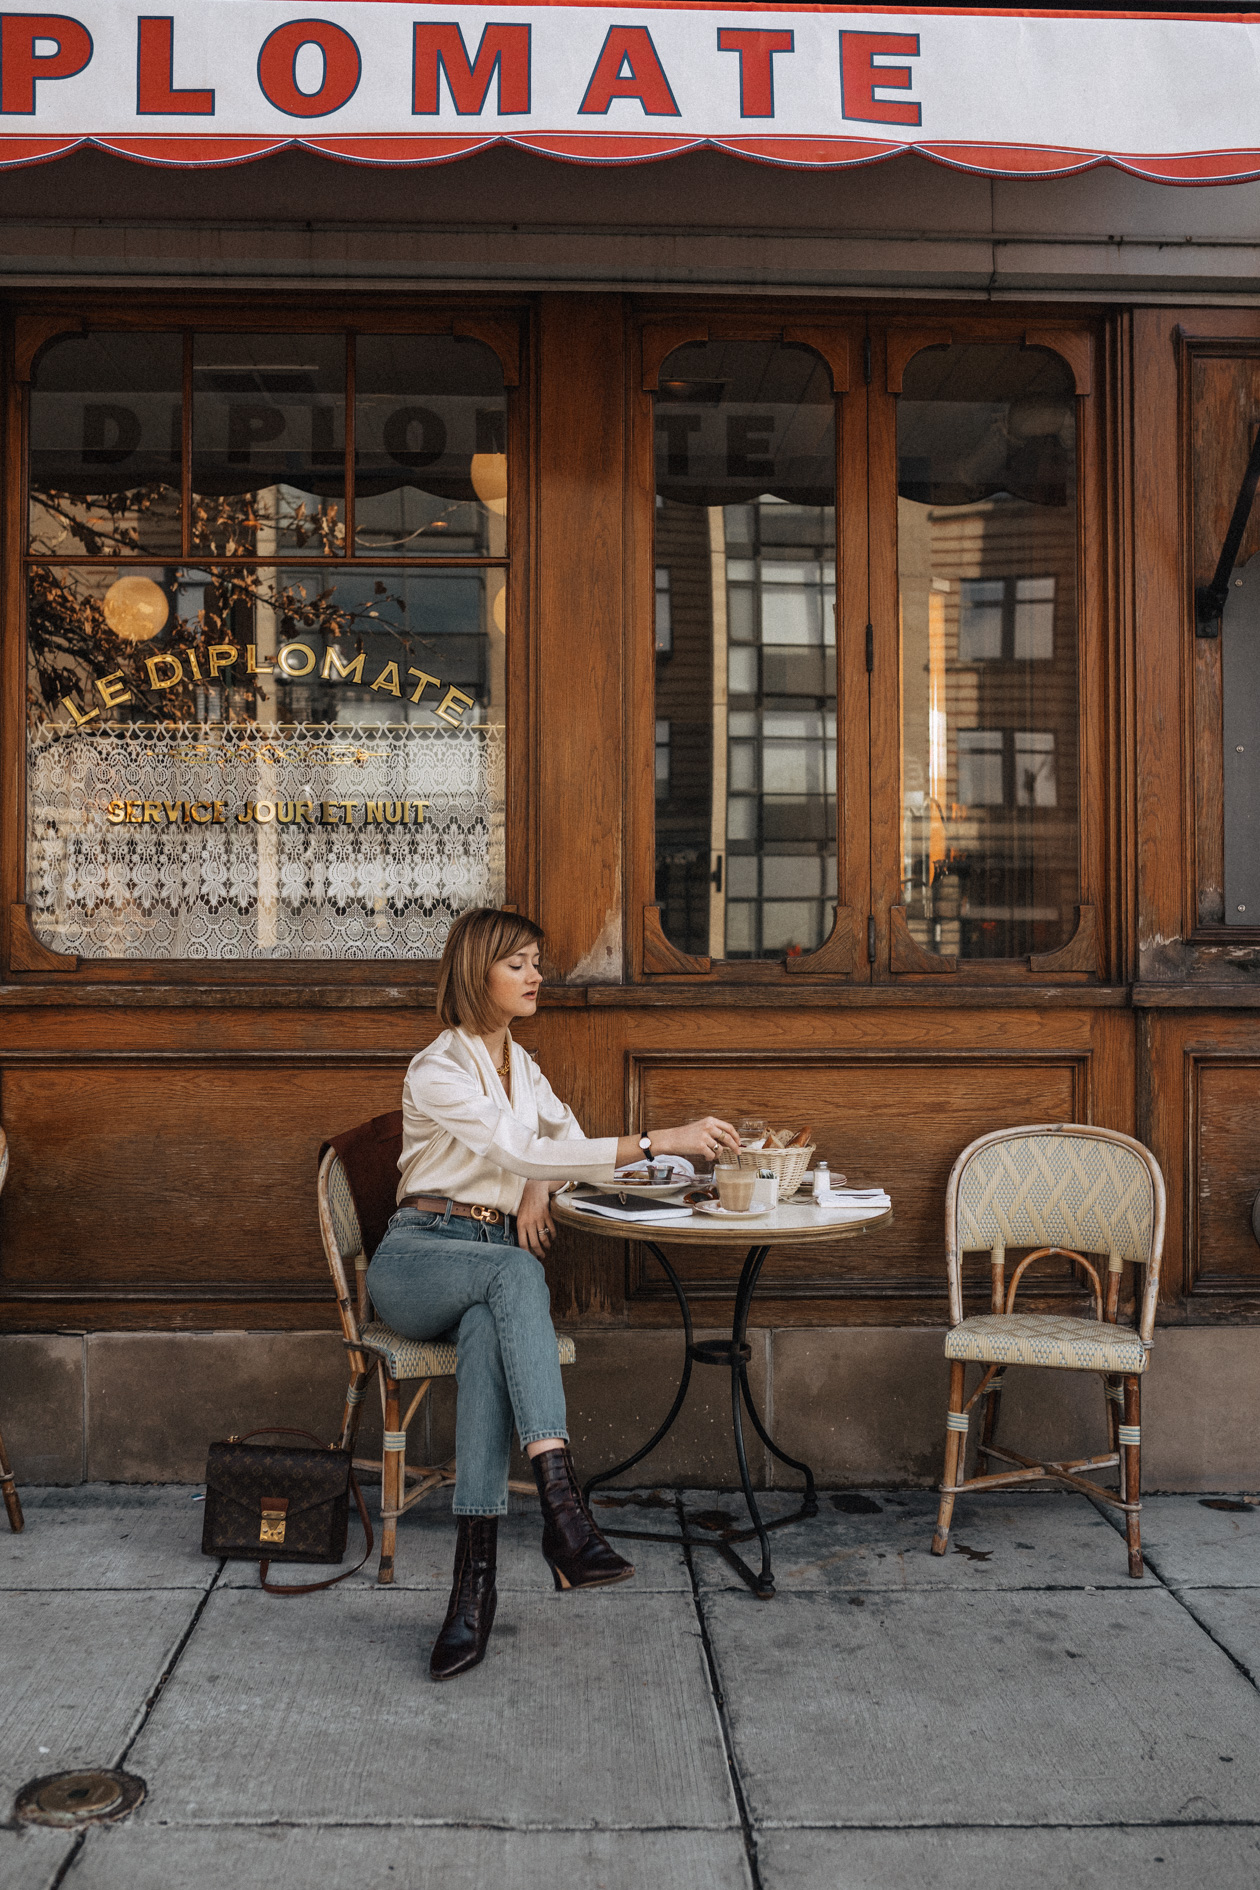 chic French cafe in Washington, DC